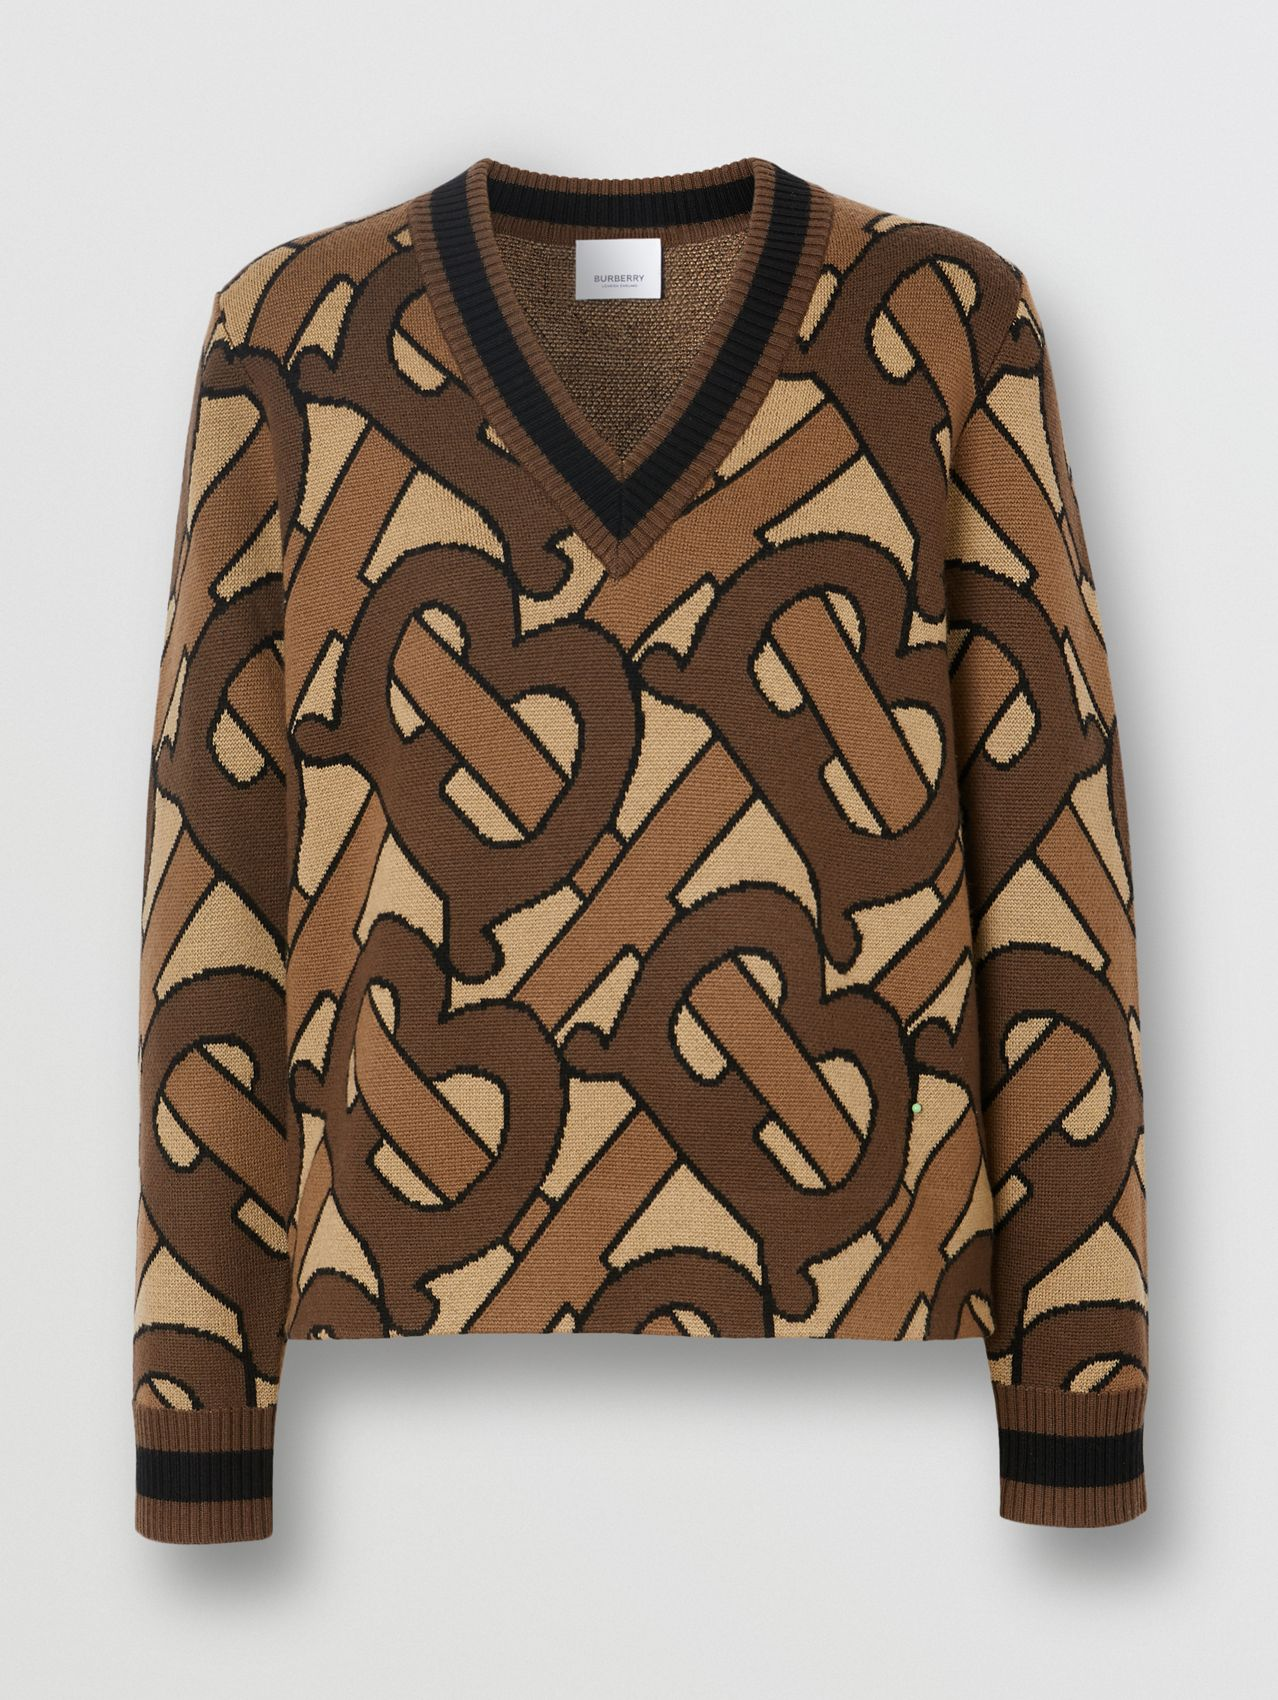 Monogram Intarsia Wool V-neck Sweater in Bridle Brown